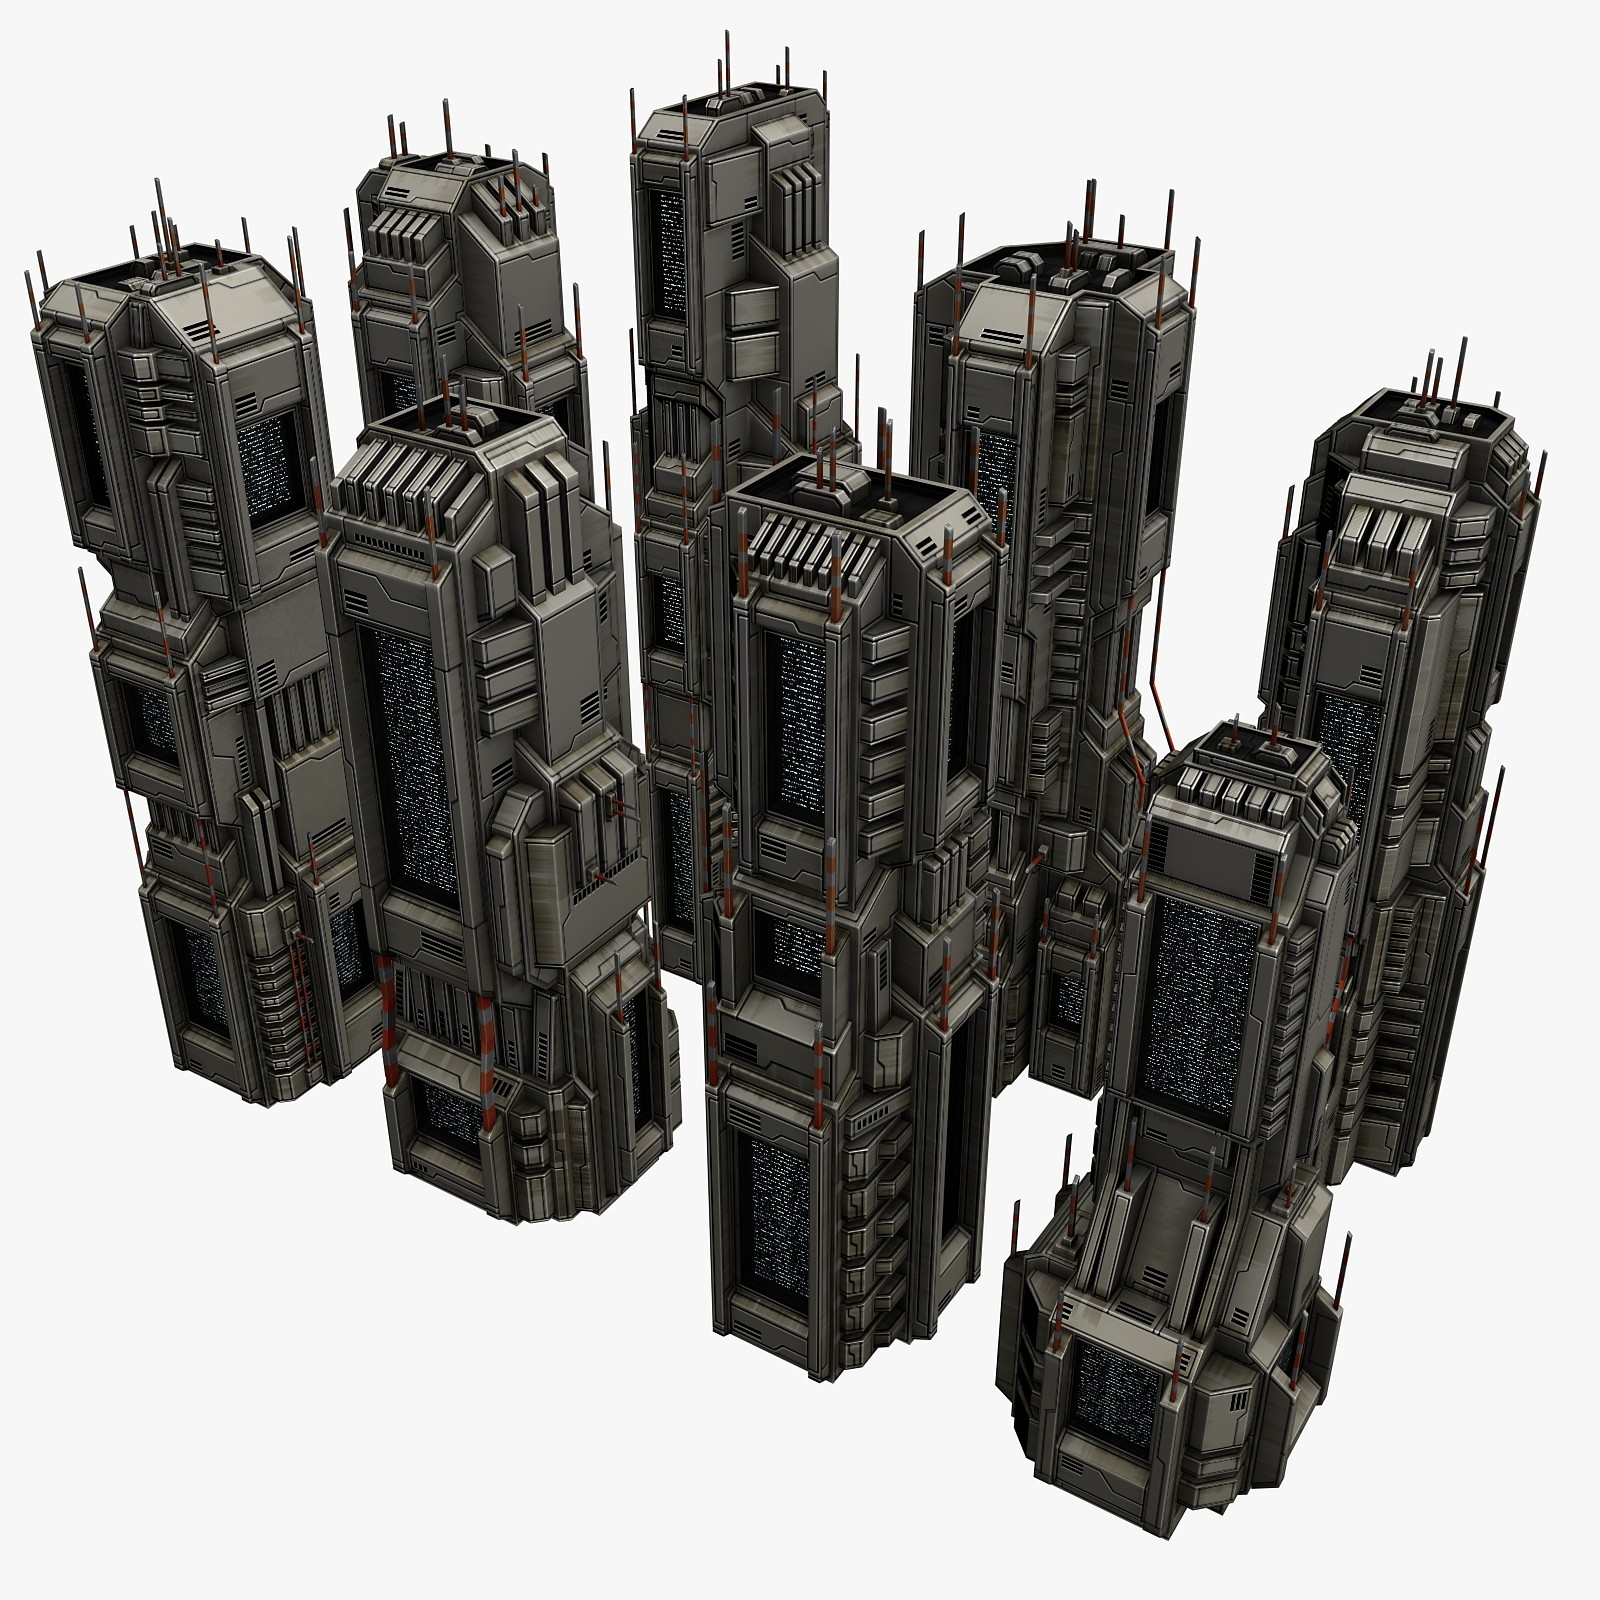 8_sci_fi_city_structures_preview_1.jpg